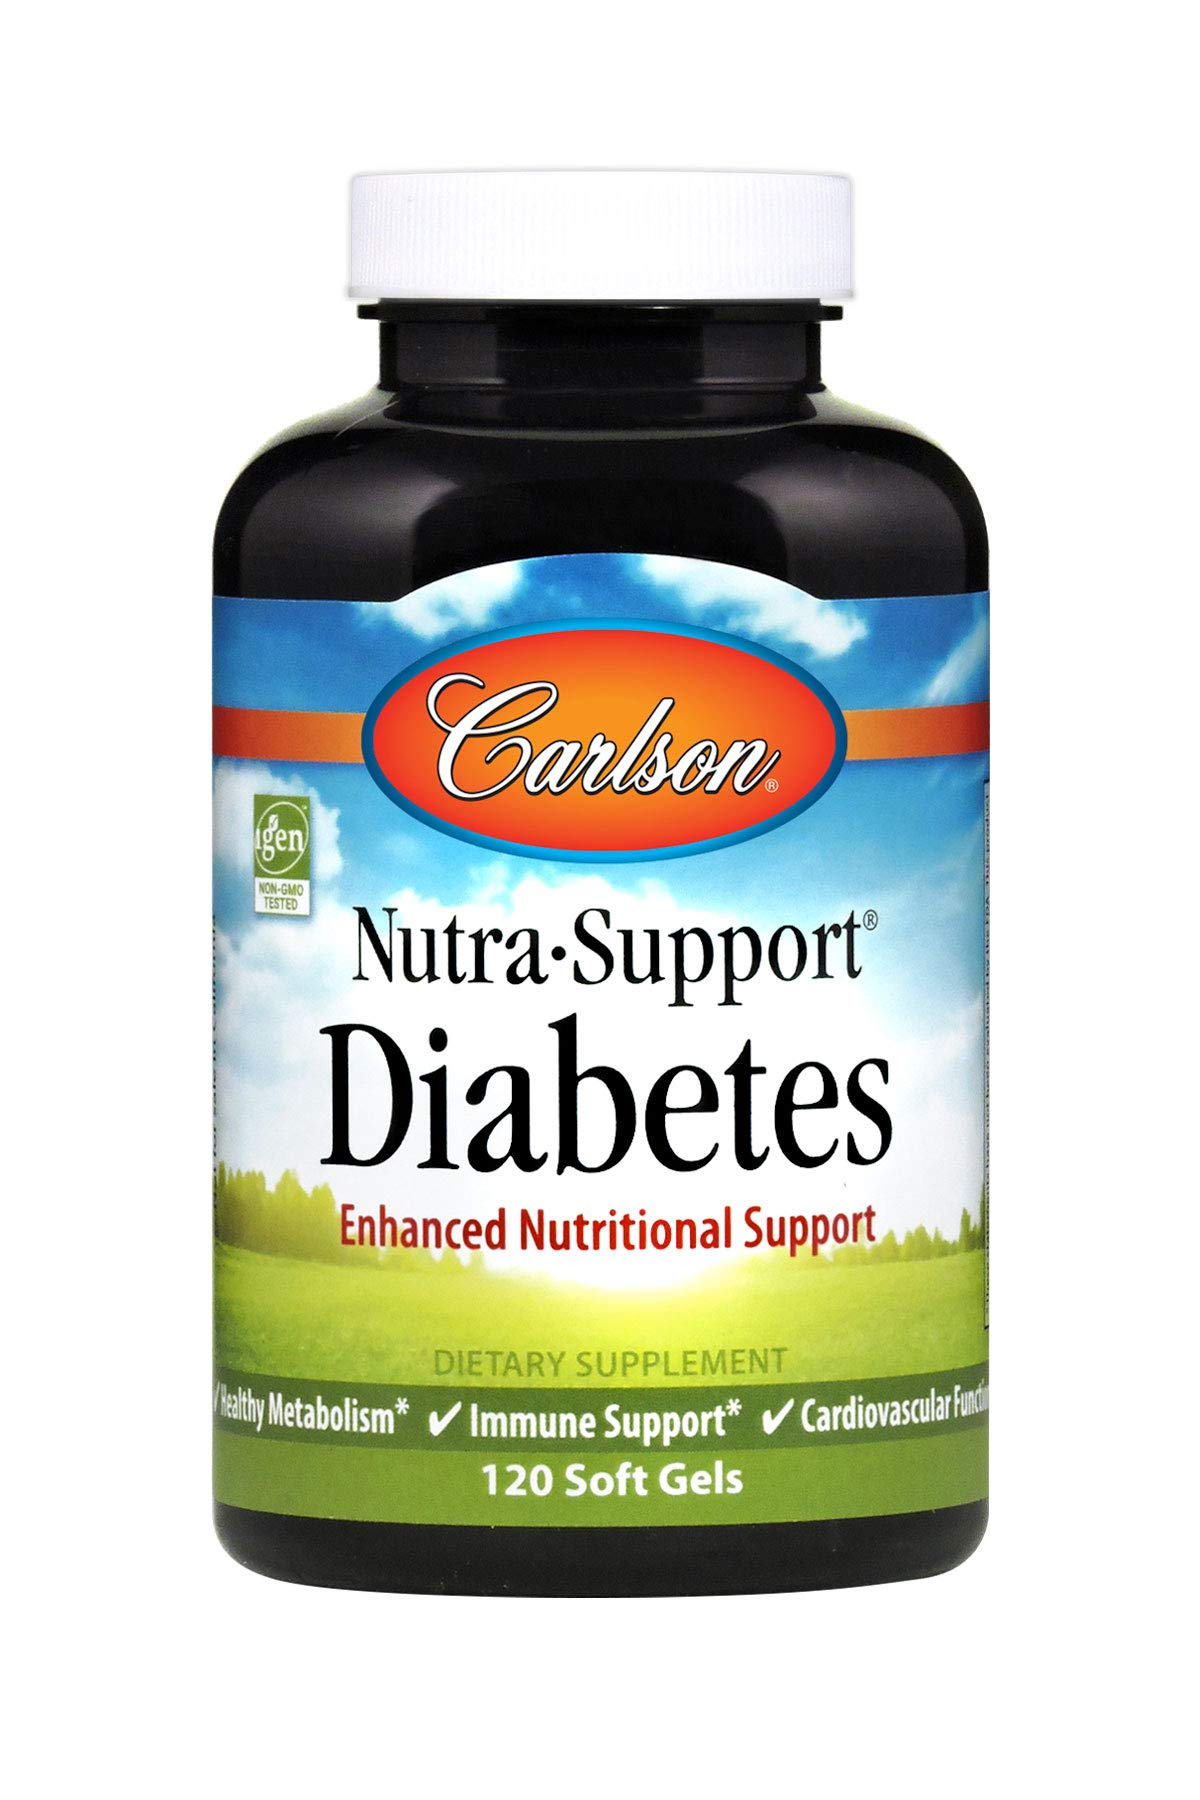 Carlson - Nutra-Support Diabetes, Enhanced Nutritional Support, Supports Special Dietary Needs, 60 Soft gels by Carlson